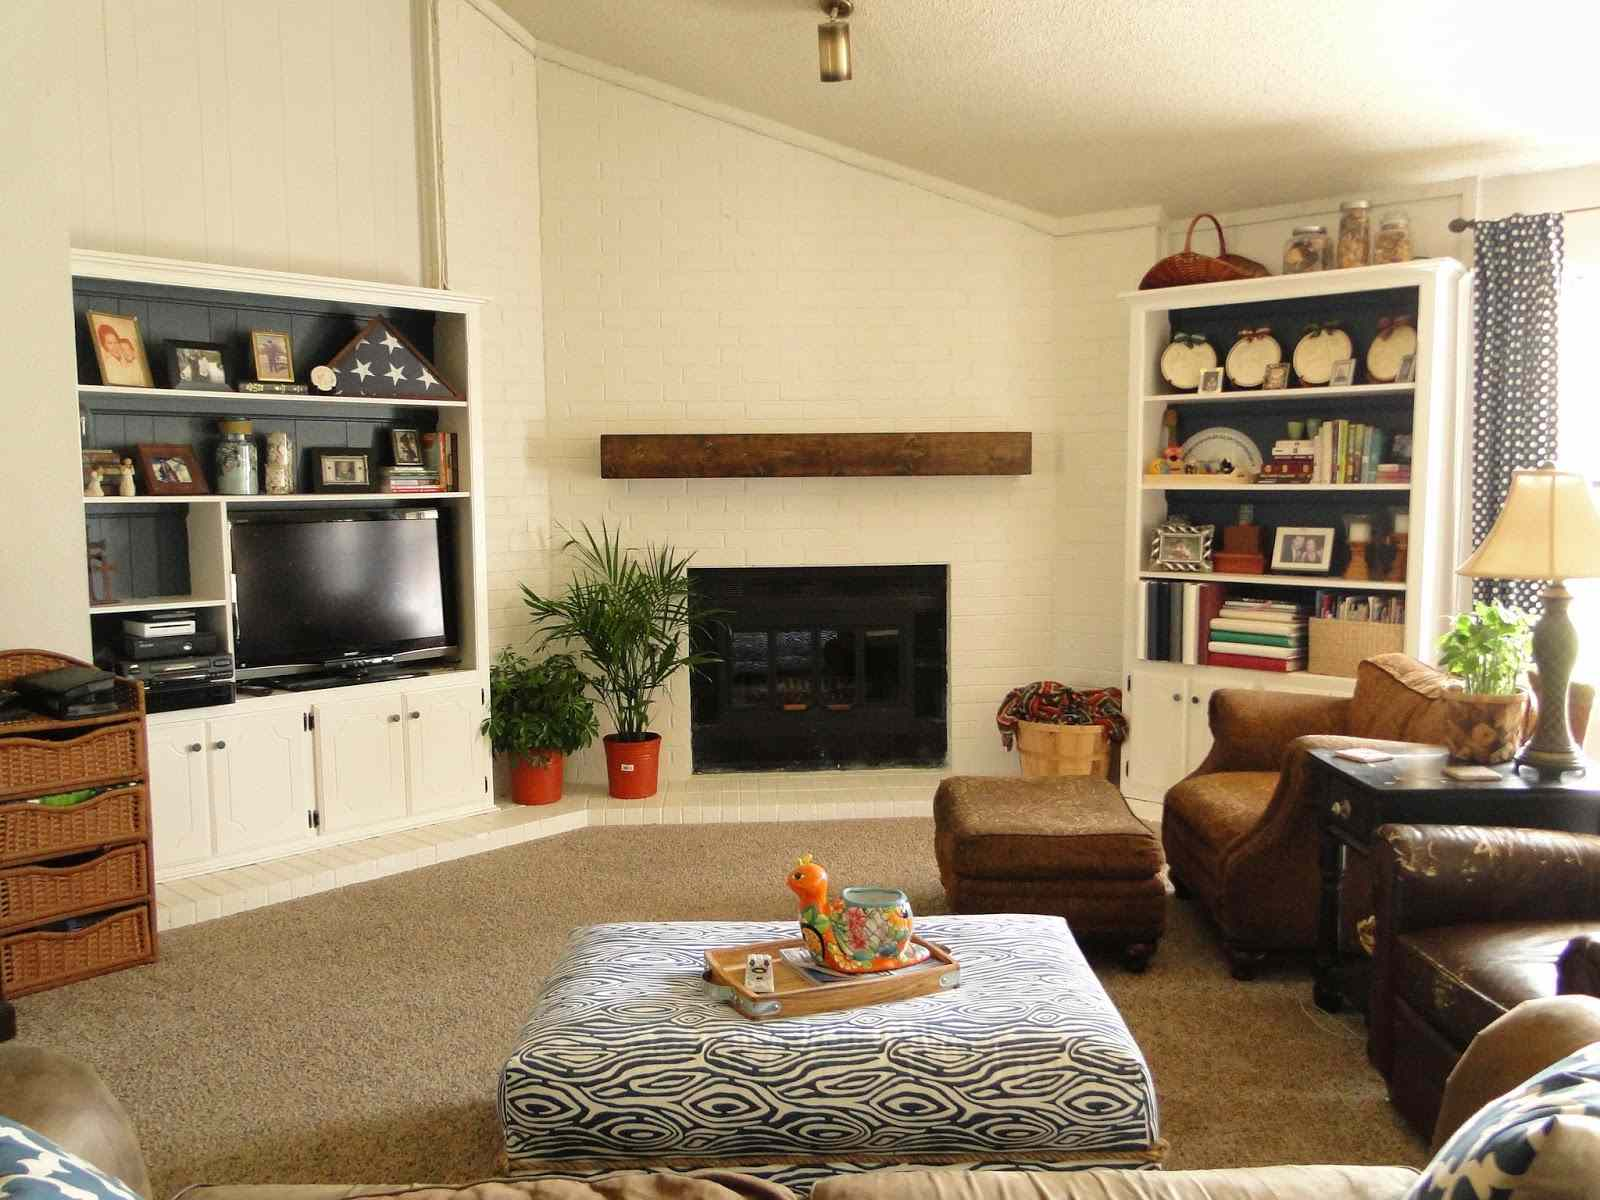 A living room with a fireplace and wooden mantel